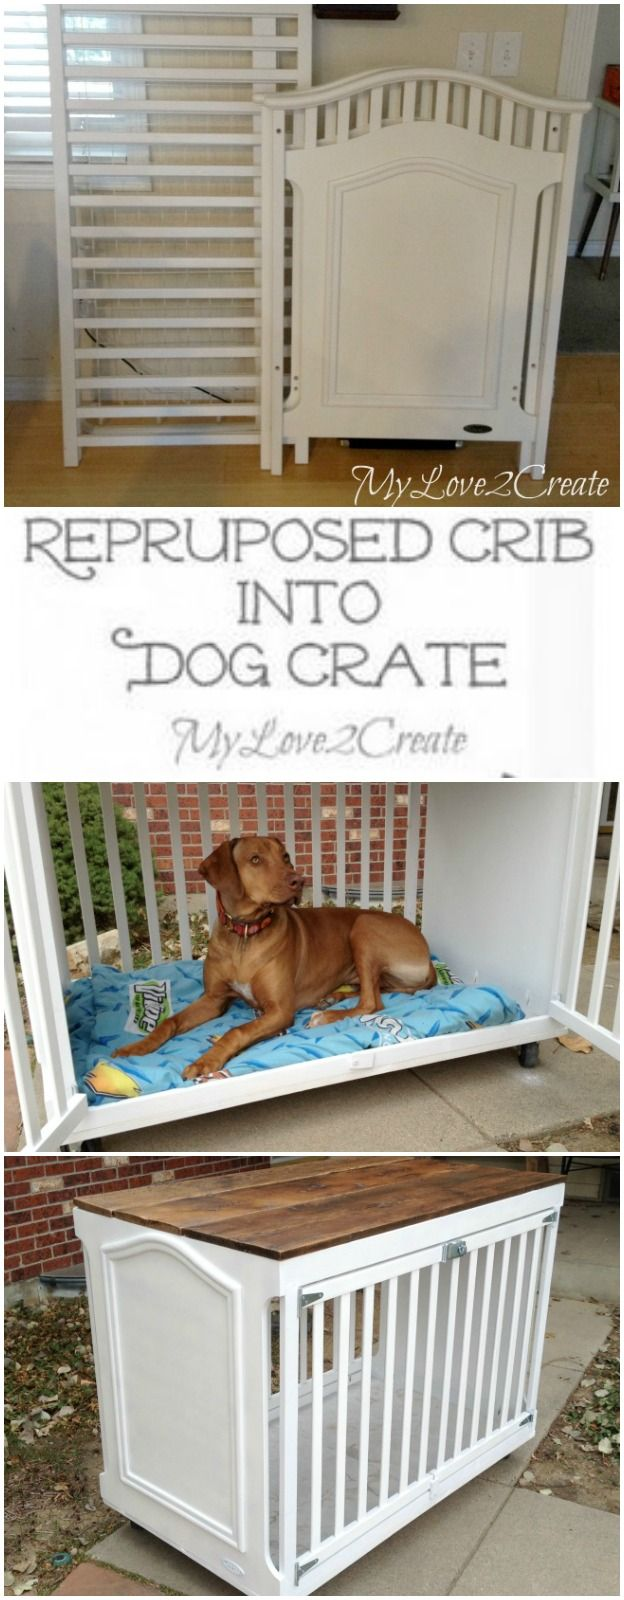 Info's : How clever is this repurposed crib turned into a dog crate from My Love 2 Create.